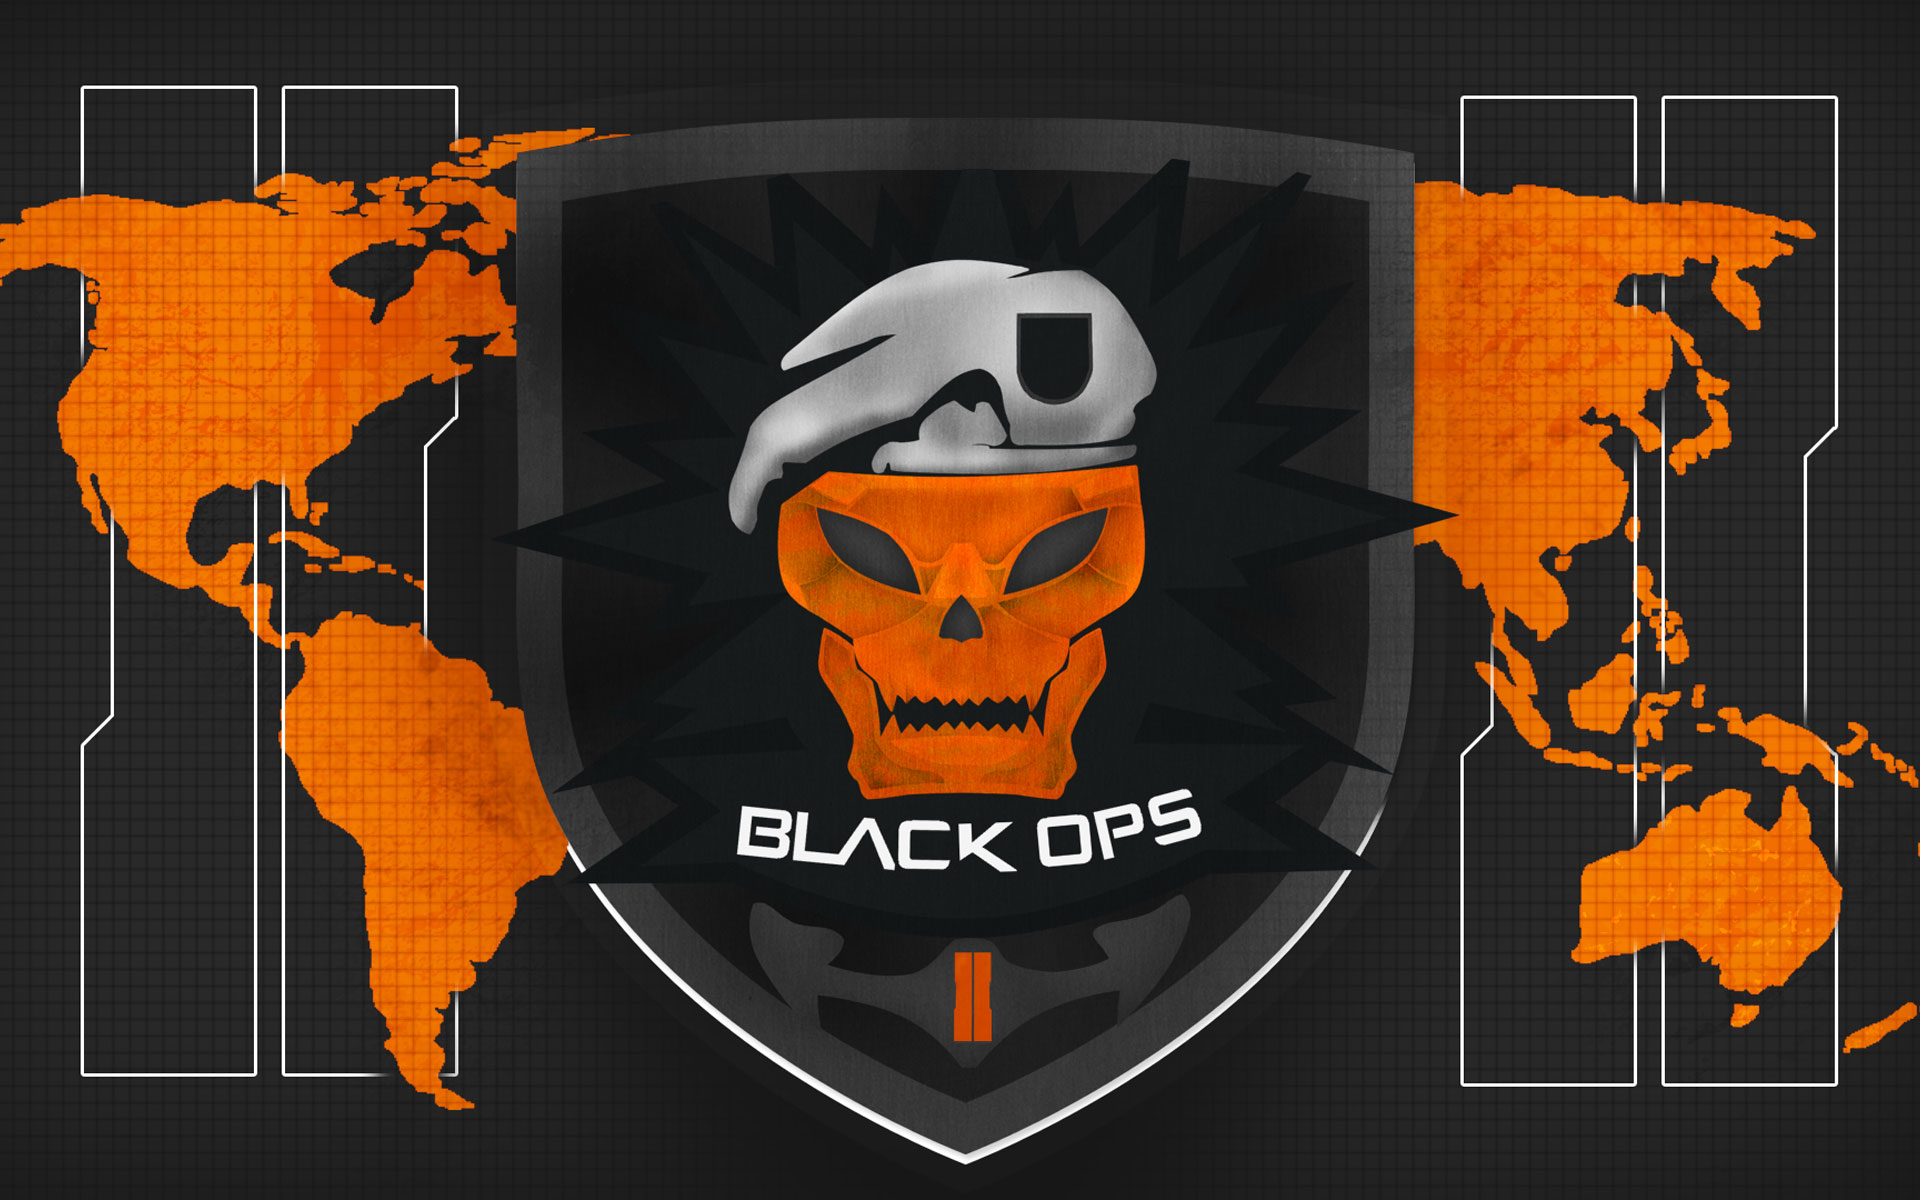 Black Ops 2 Wallpaper for Download 1920x1200